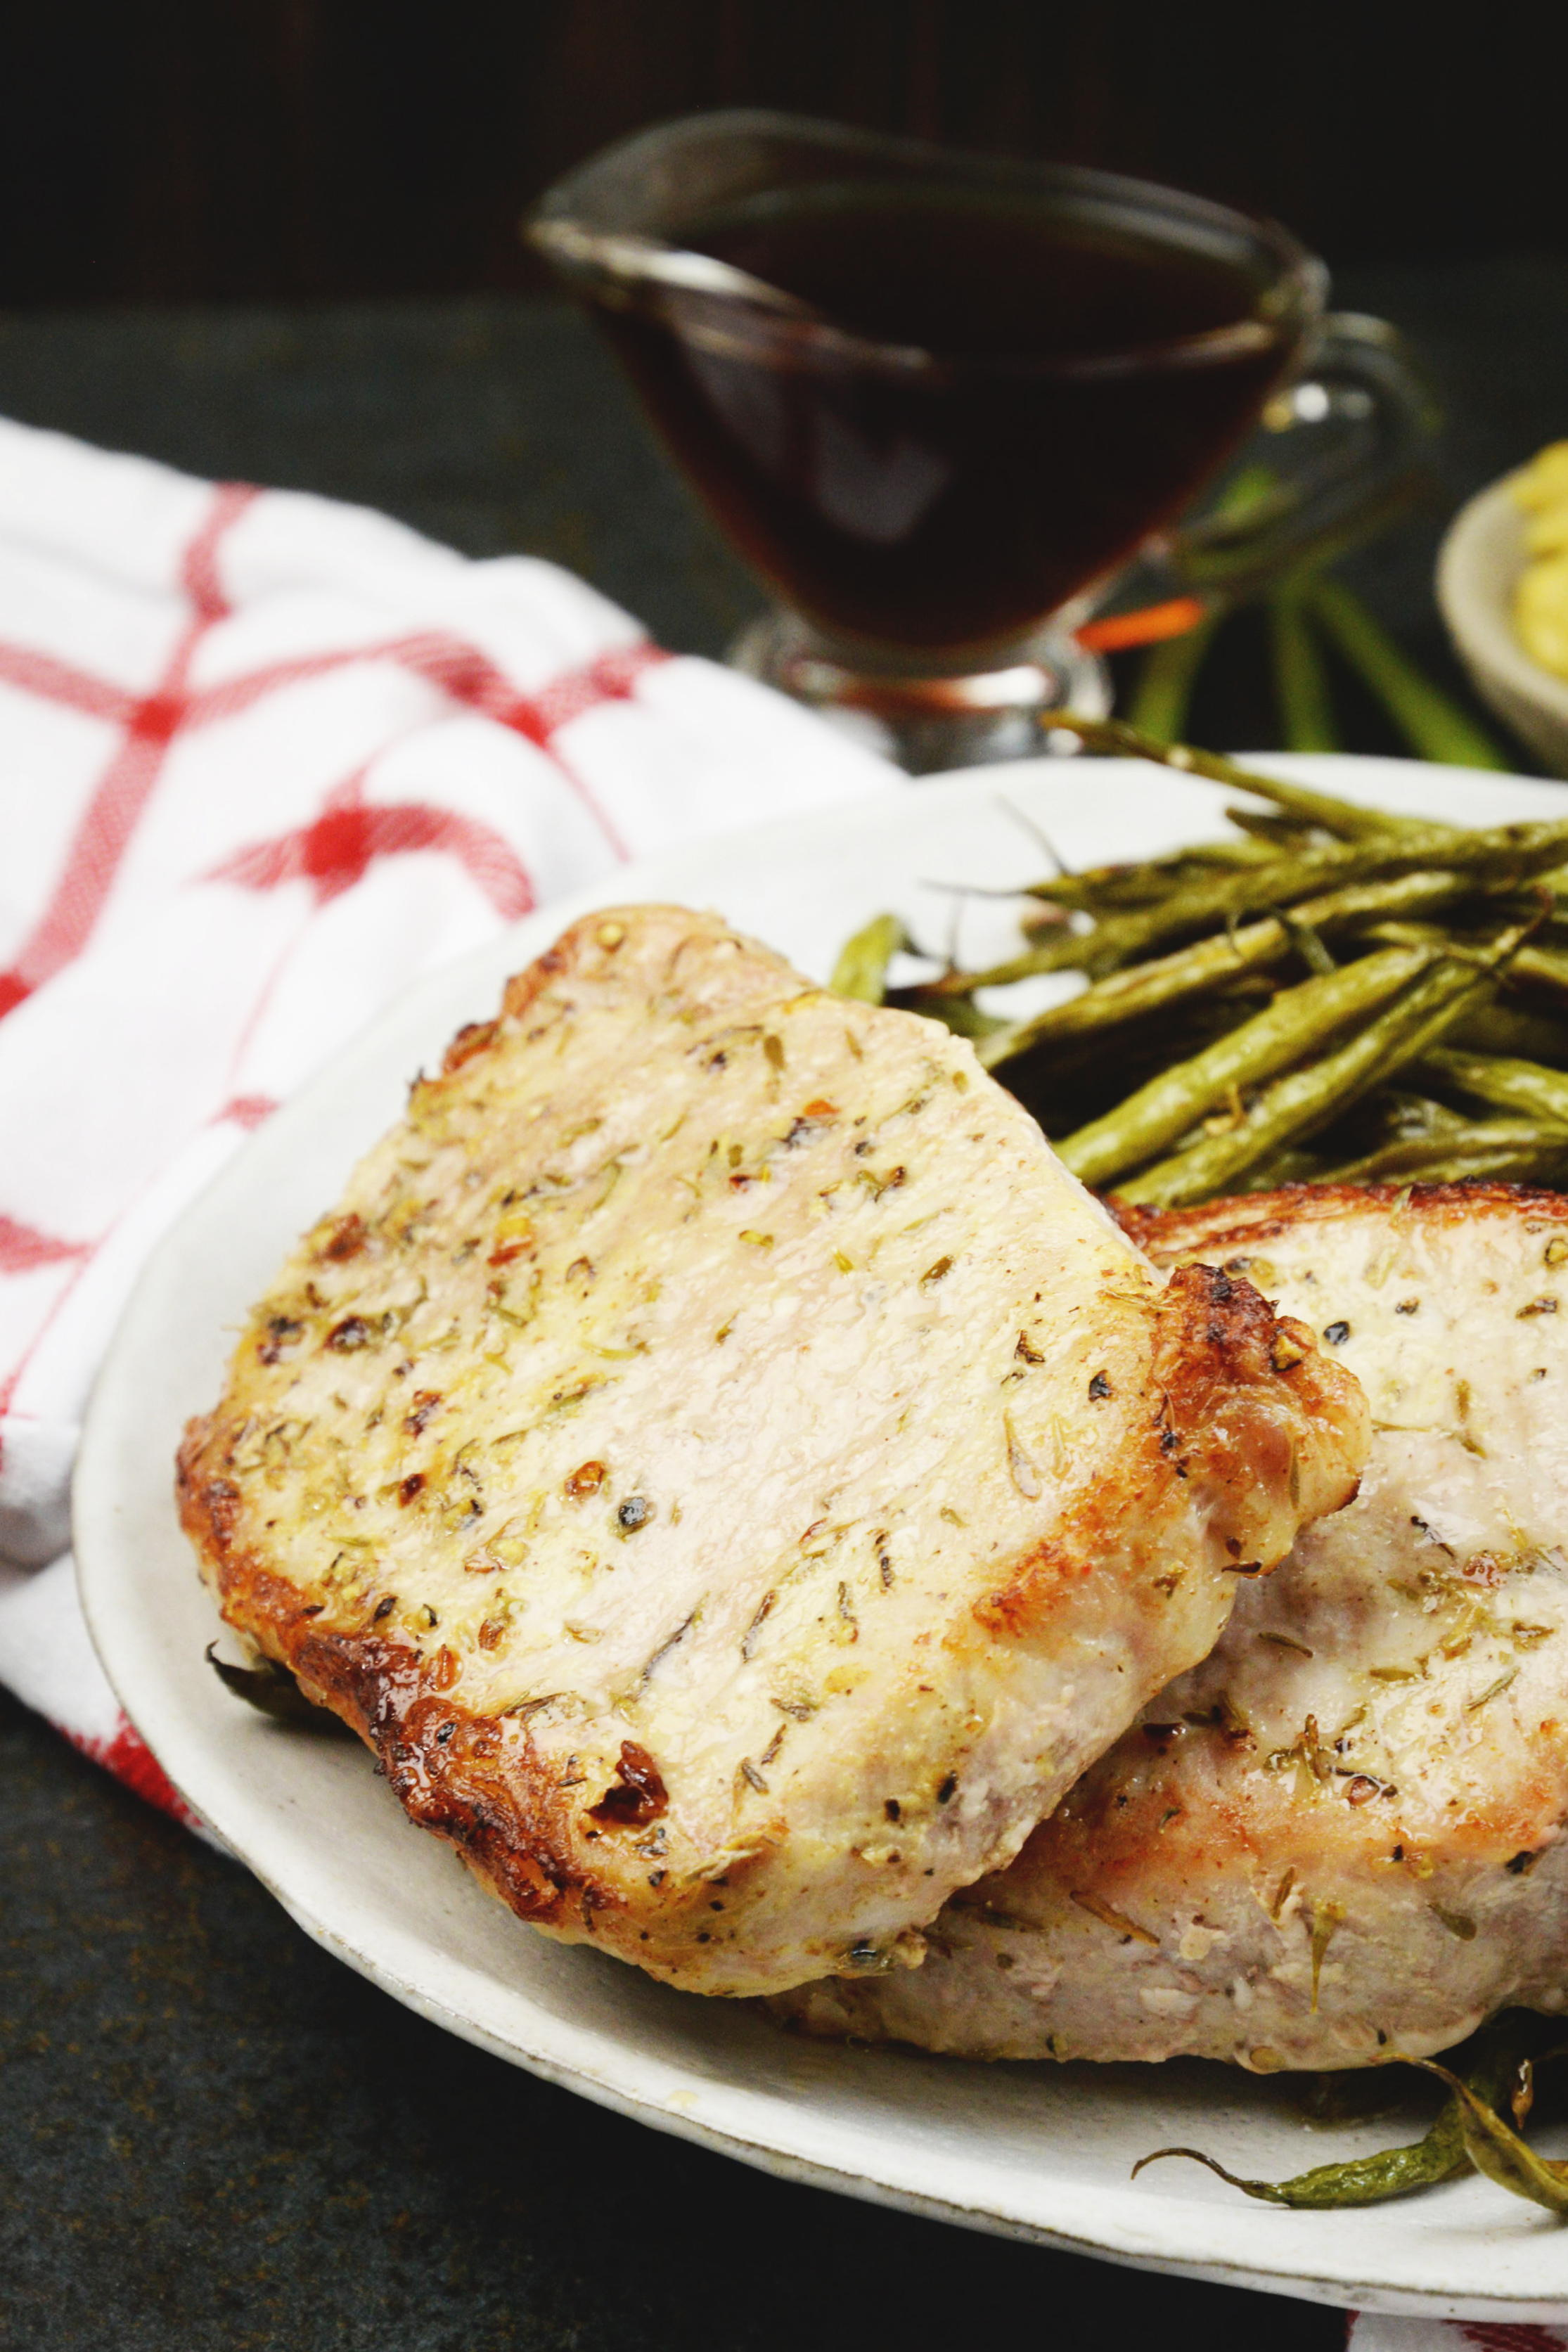 heet Pan Pork Chops with Green Beans-serving the chops and beans on a plate.